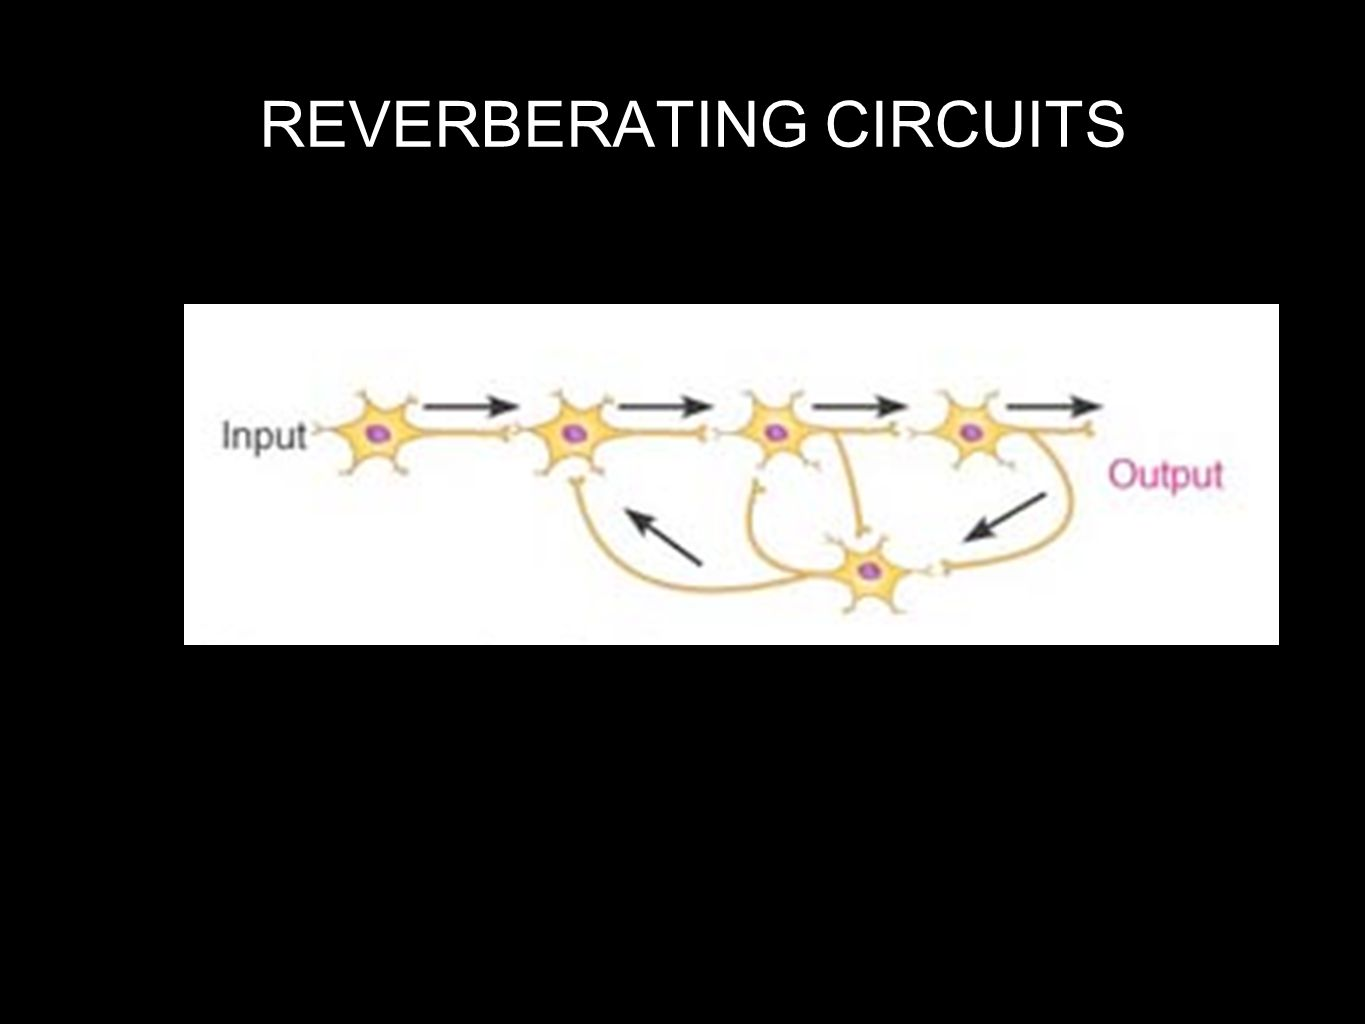 REVERBERATING CIRCUITS